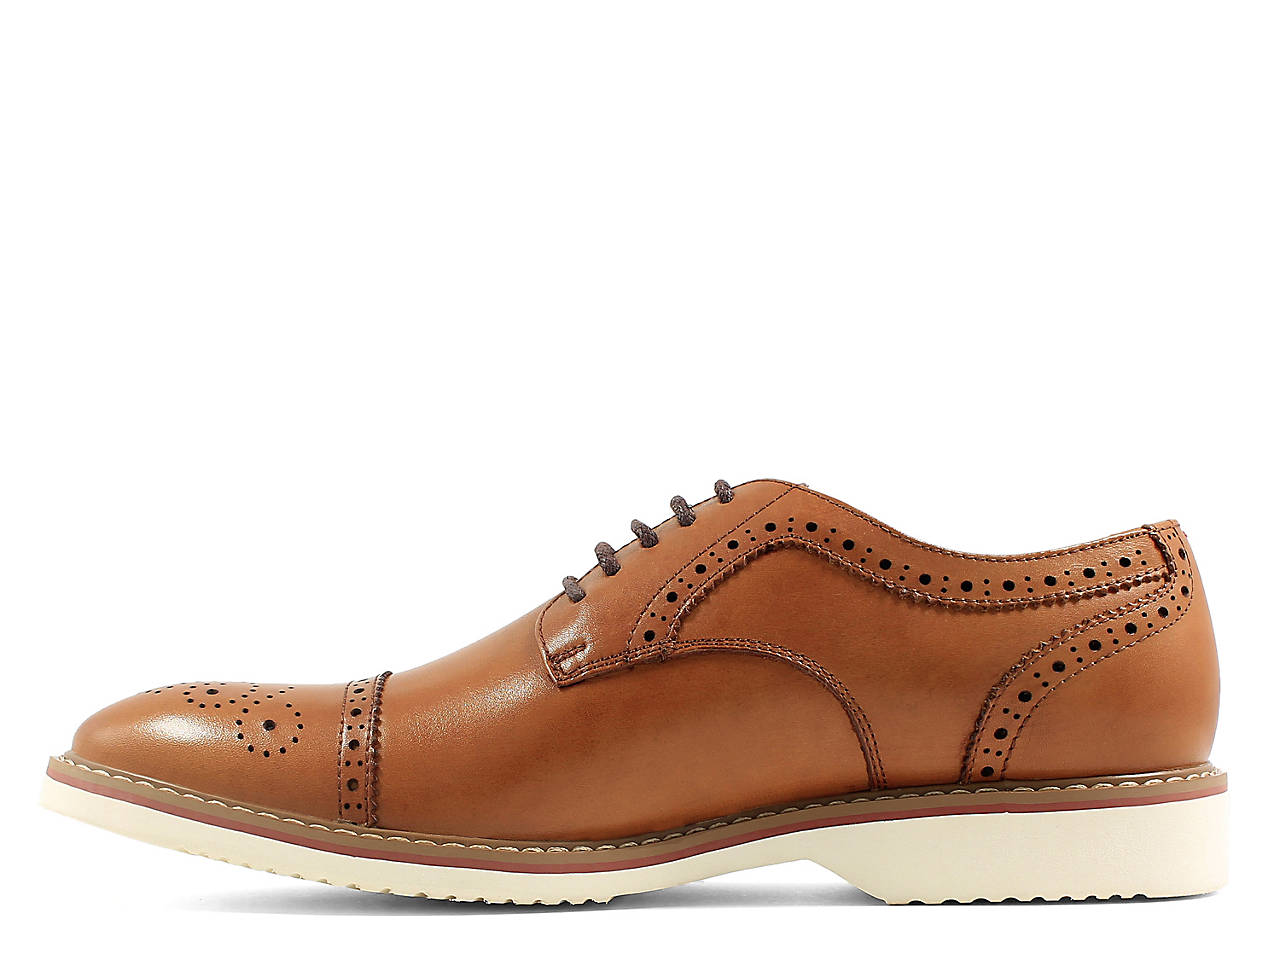 Florsheim Men's Union Cap-Toe Oxfords Men's Shoes VeQHrkl